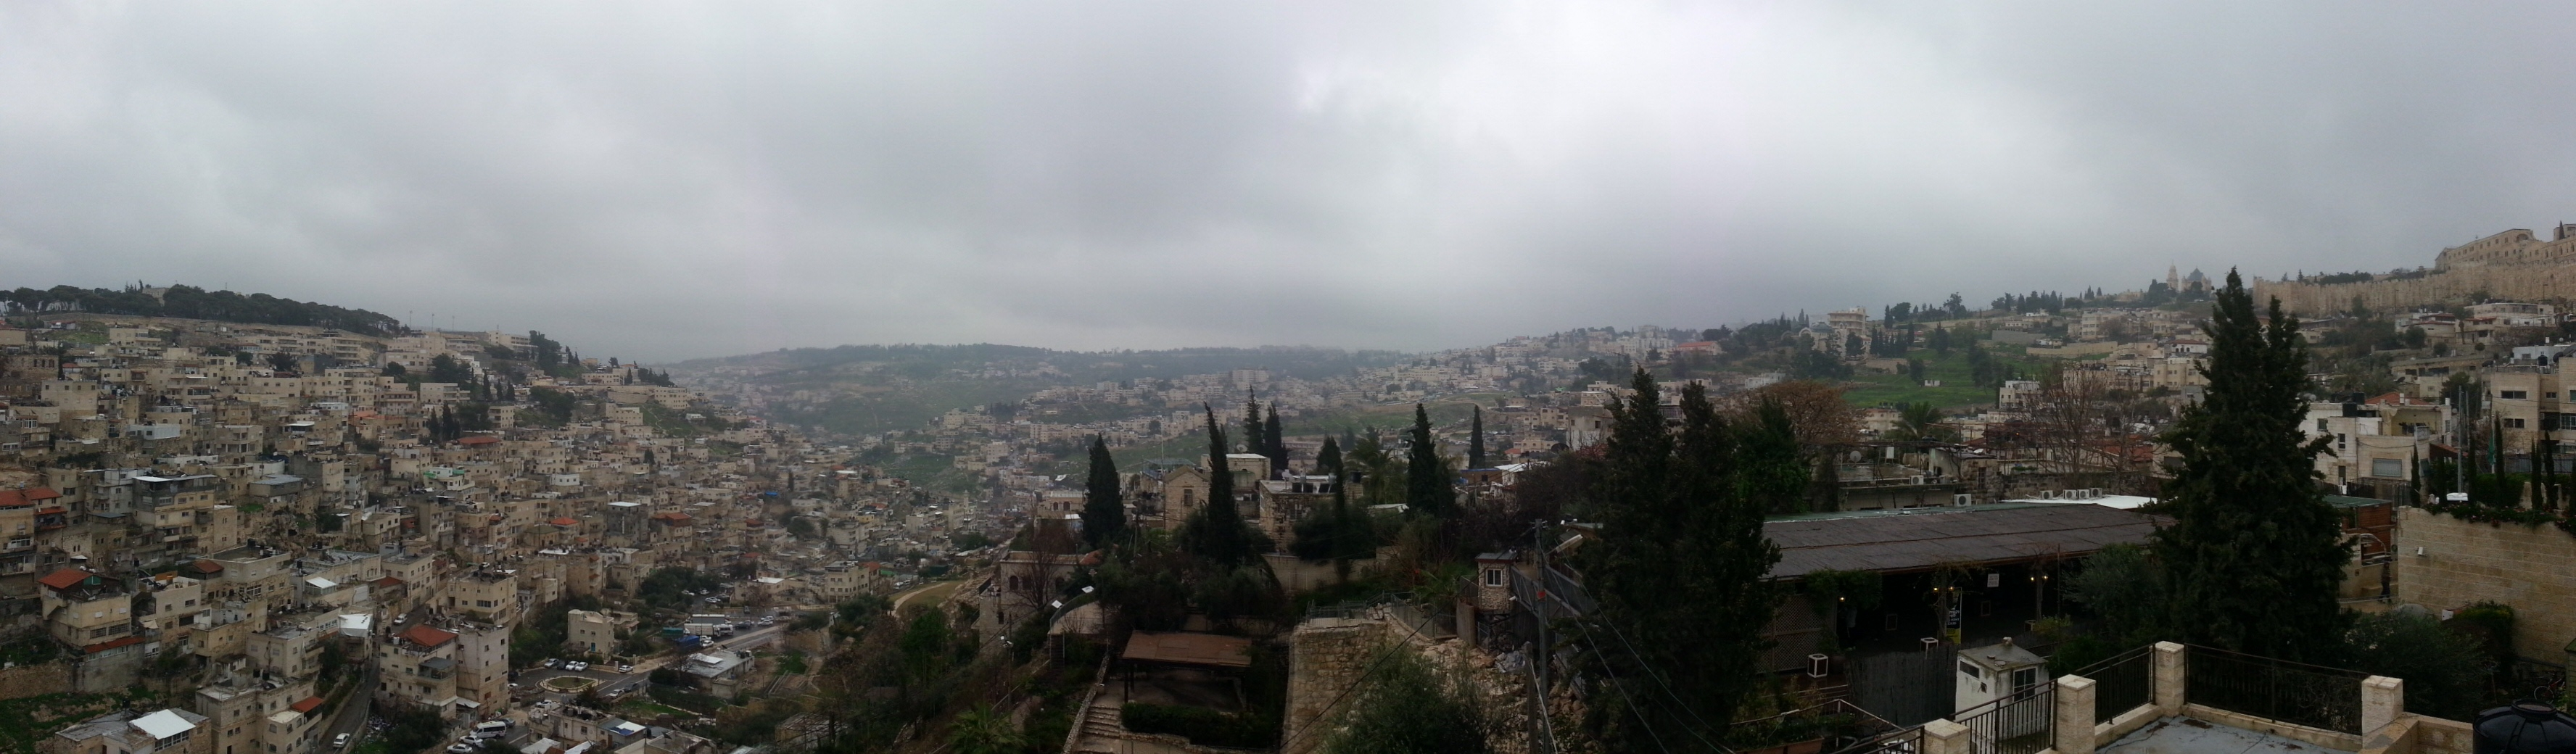 View from the top of the City of David over South and East Jerusalem